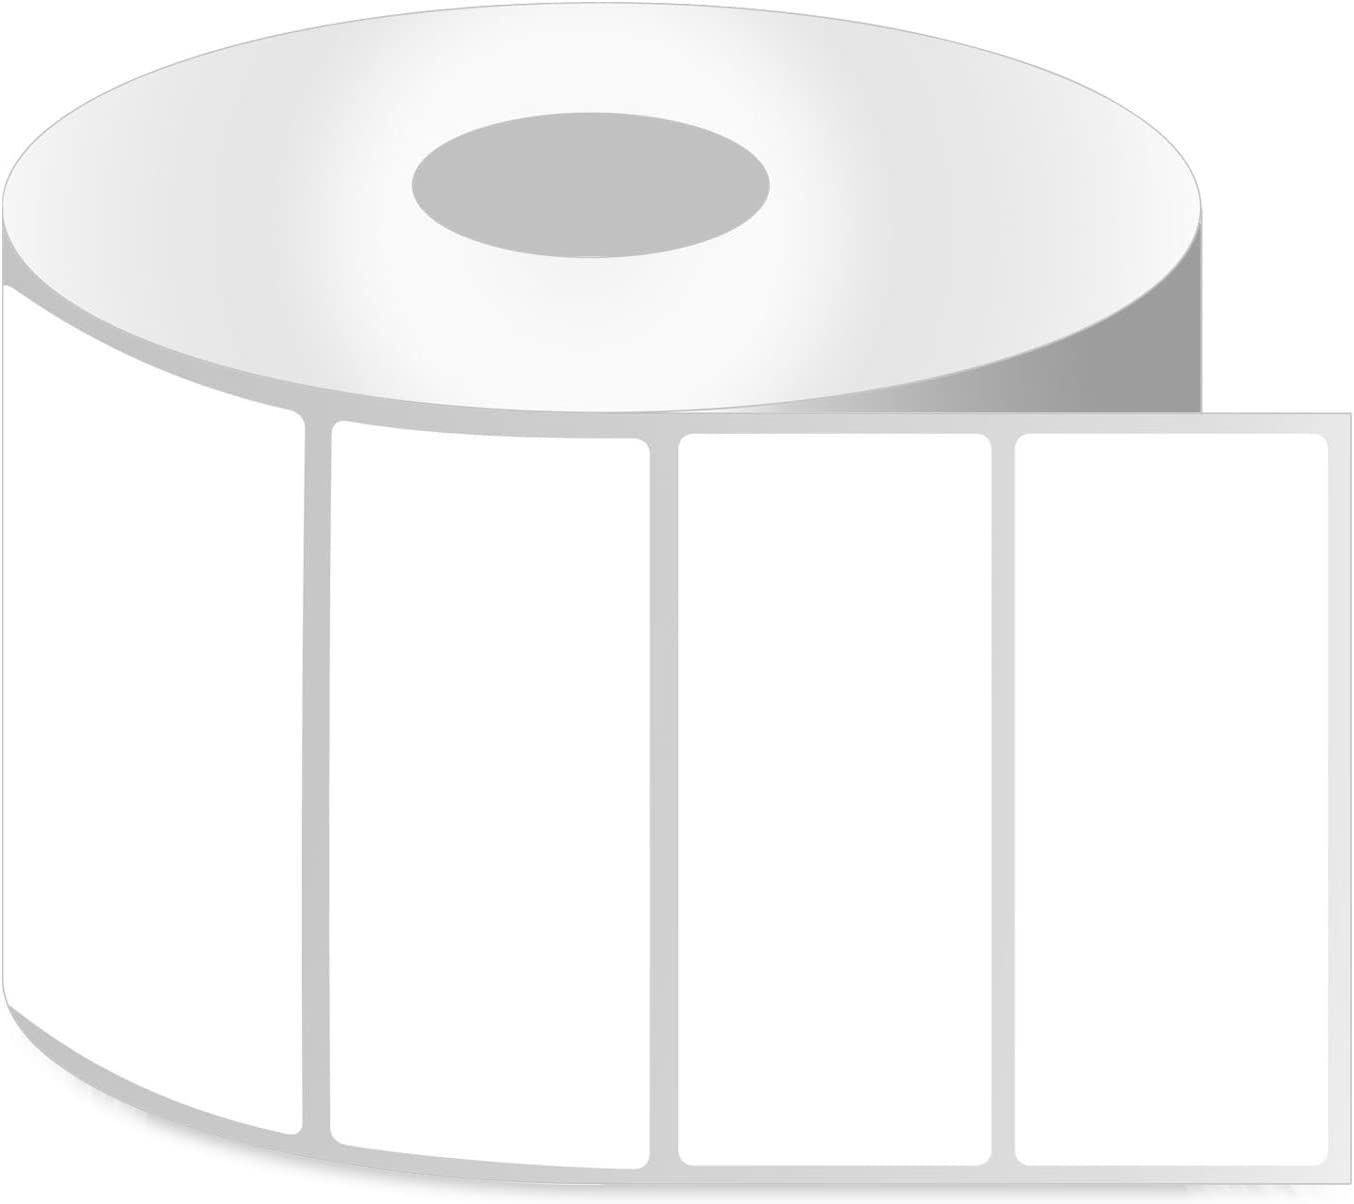 """4"""" x 1"""" [ OfficeSmartLabels ] ZE1400100 Direct Thermal Labels, Compatible with Zebra Printers Postage Barcode Shipping Desktop Printer Sticker - 12 Rolls / 1"""" Core"""